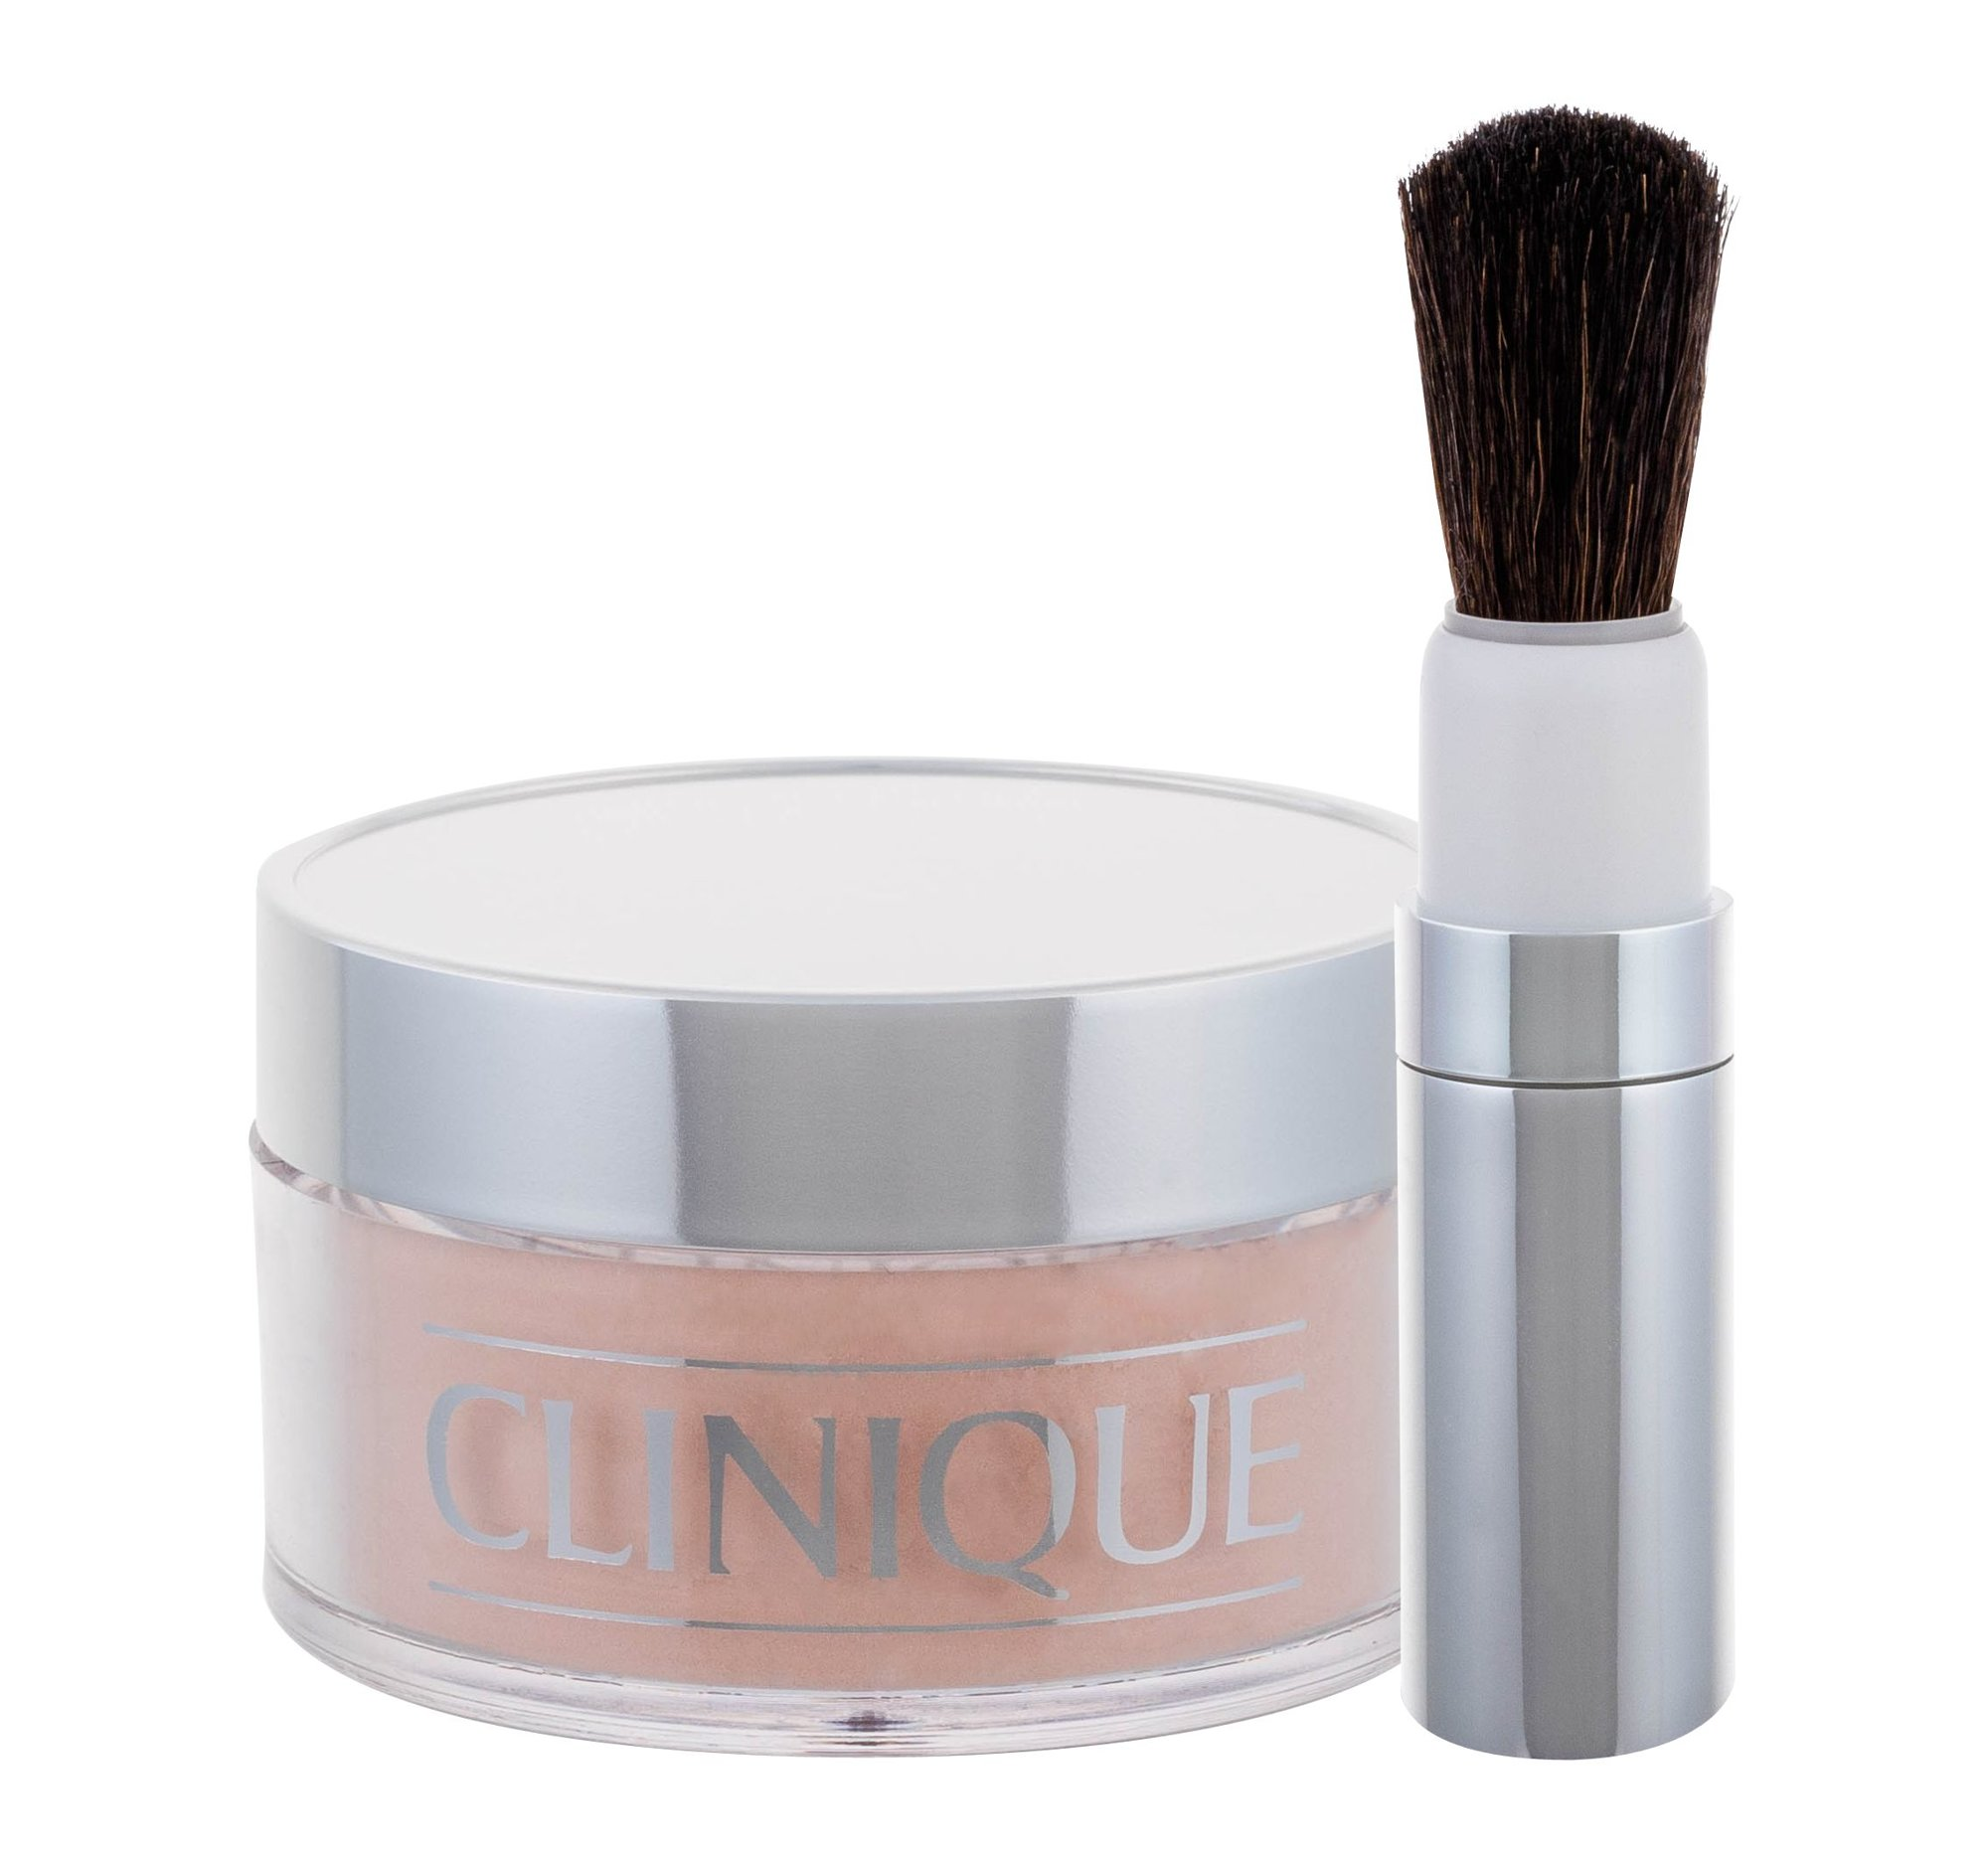 Clinique Blended Cosmetic 35ml 04 Transparency Face Powder And Brush